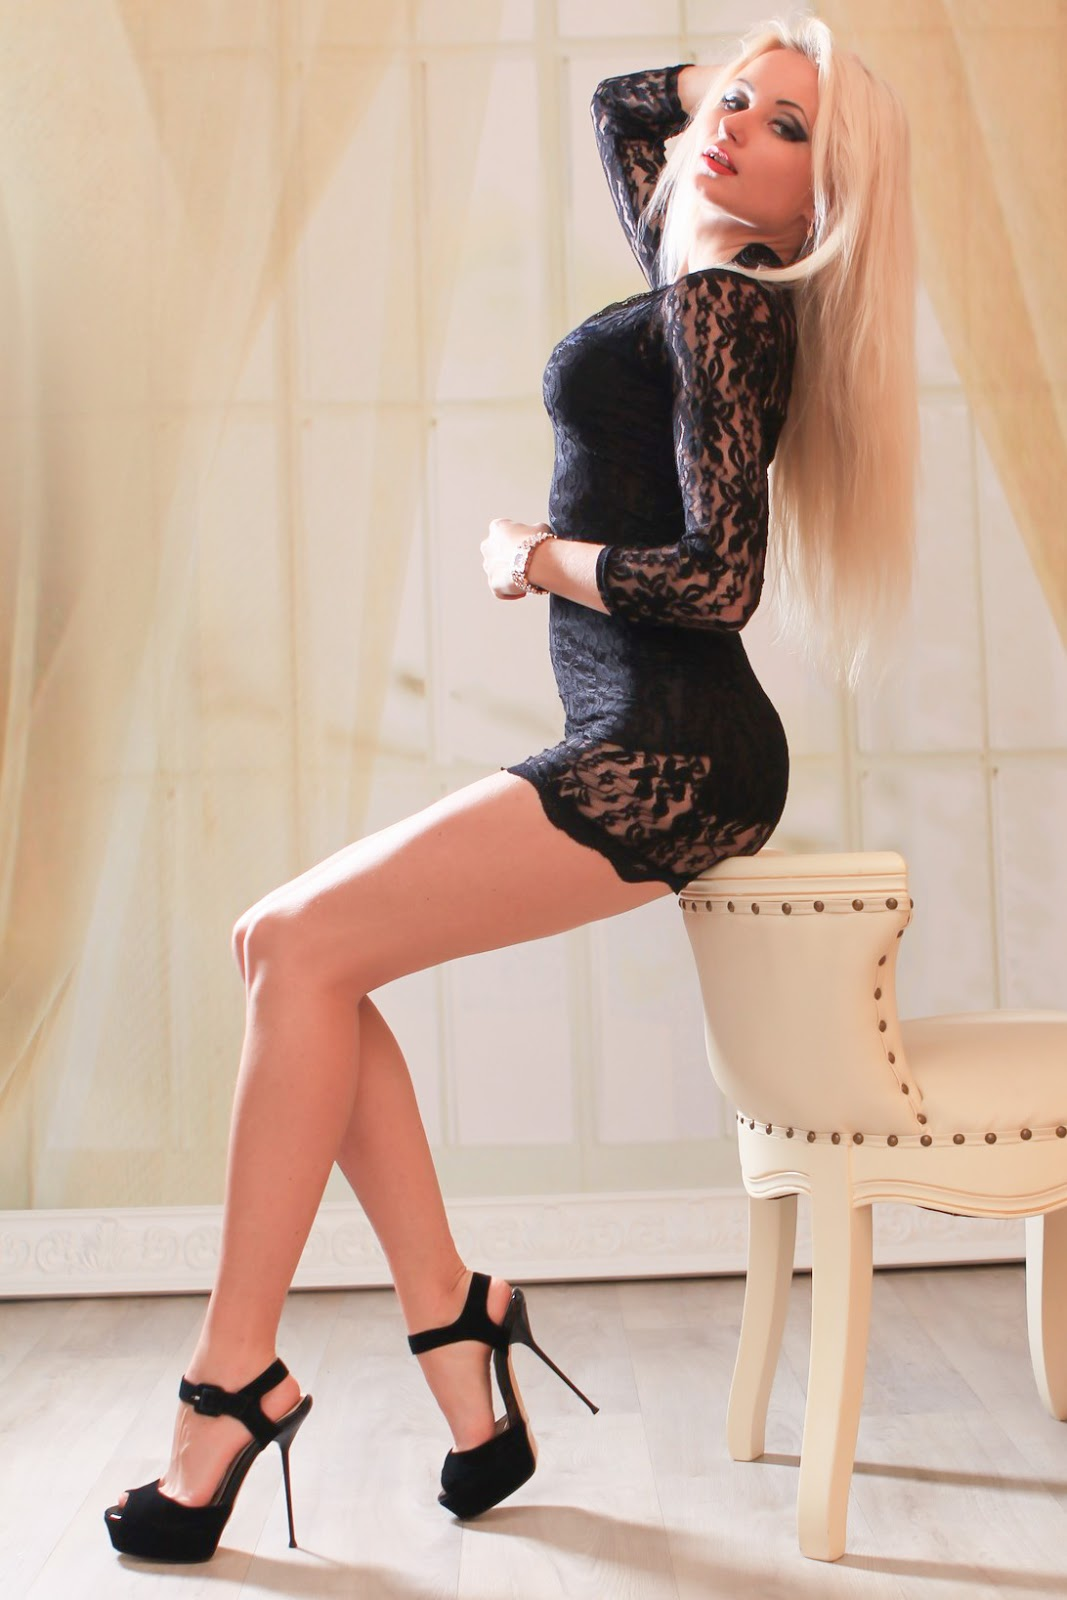 Russian escort new york